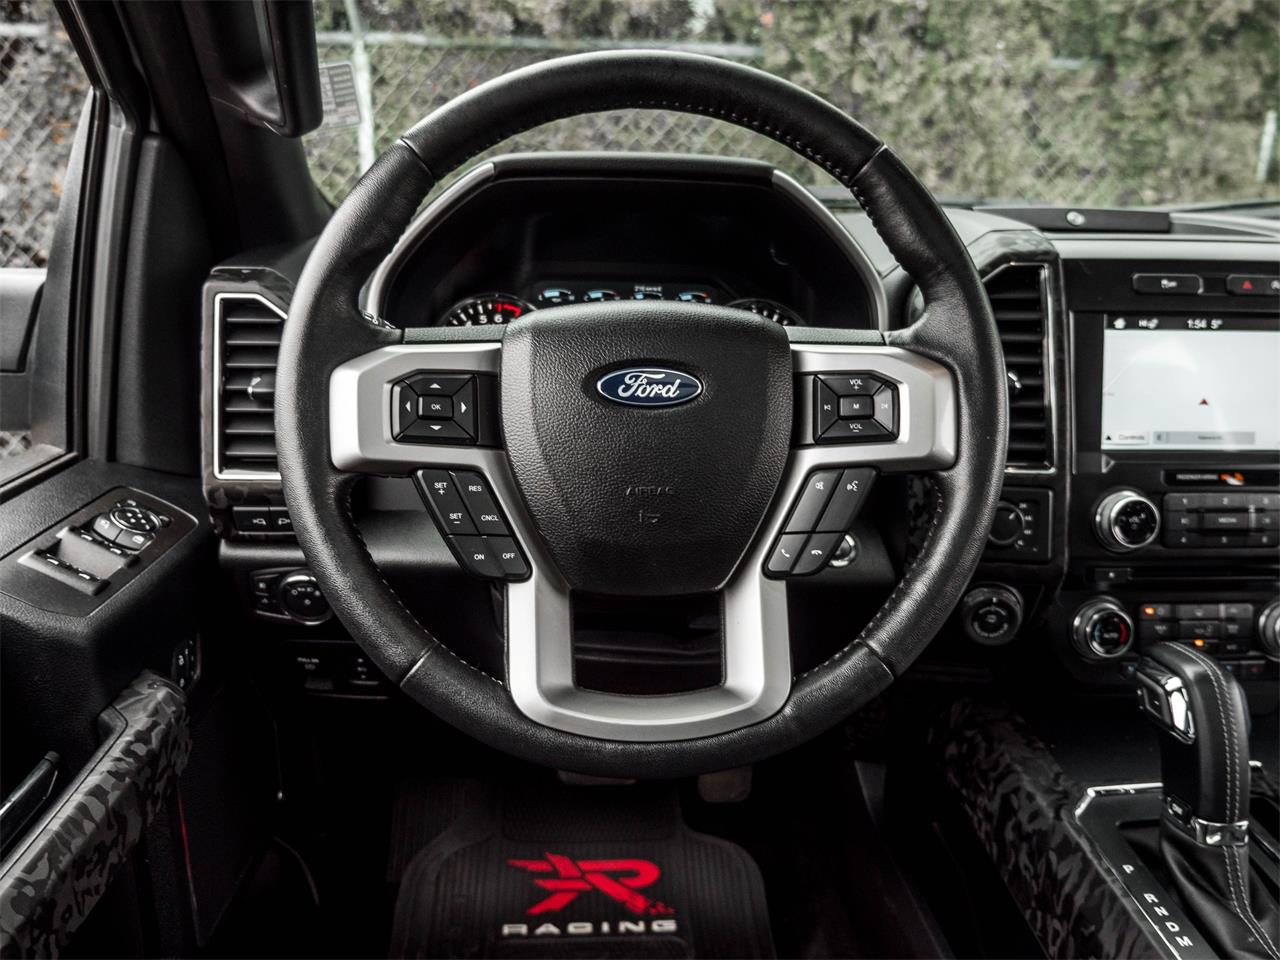 2018 Ford F150 (CC-1322390) for sale in Kelowna, British Columbia